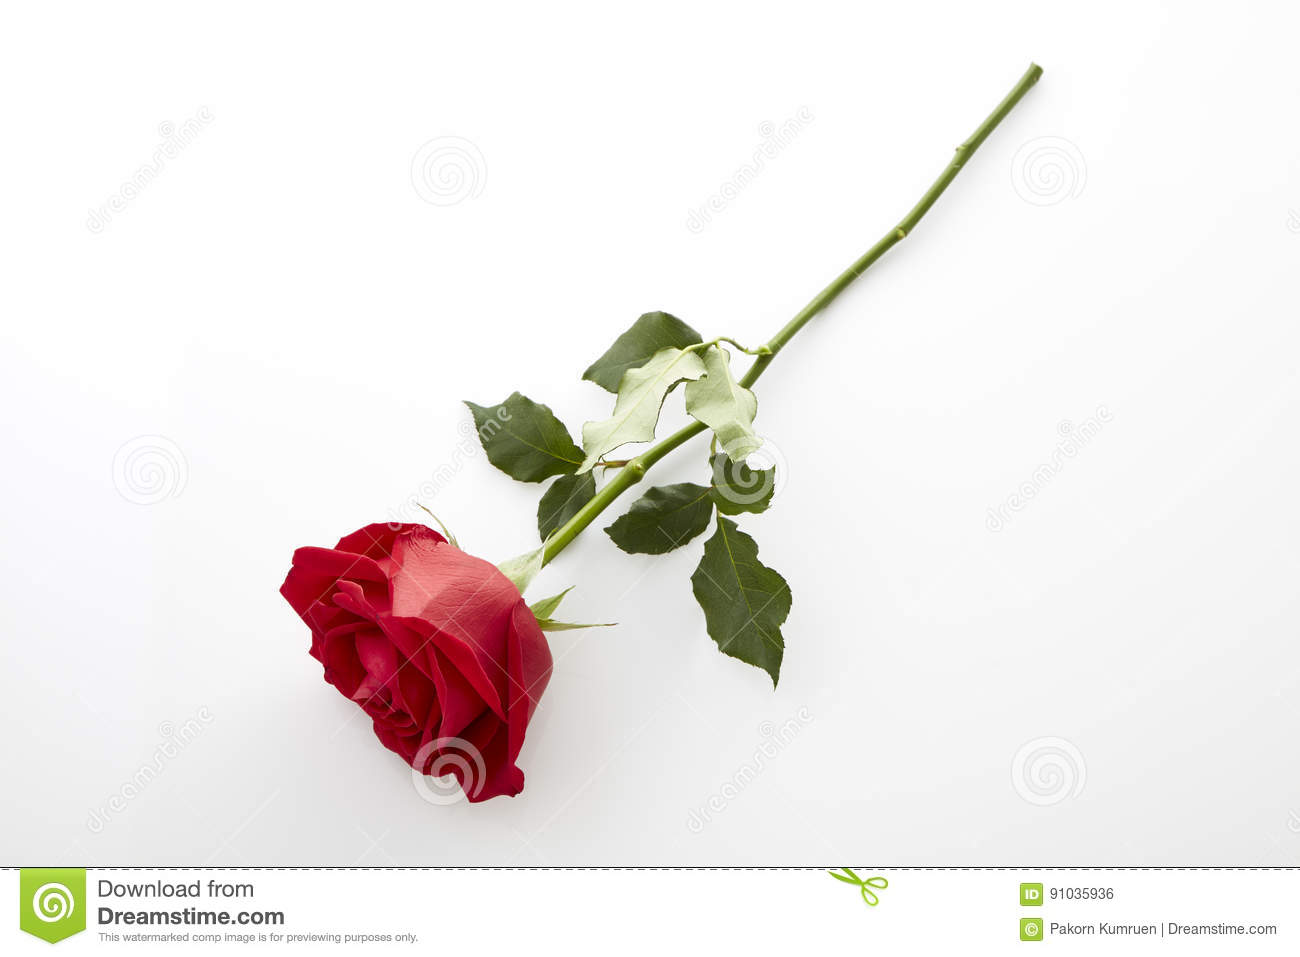 Beautiful Single Red Rose Flower Isolated Royalty Free: Long Stem Red Rose Stock Photo. Image Of Long, Frehness